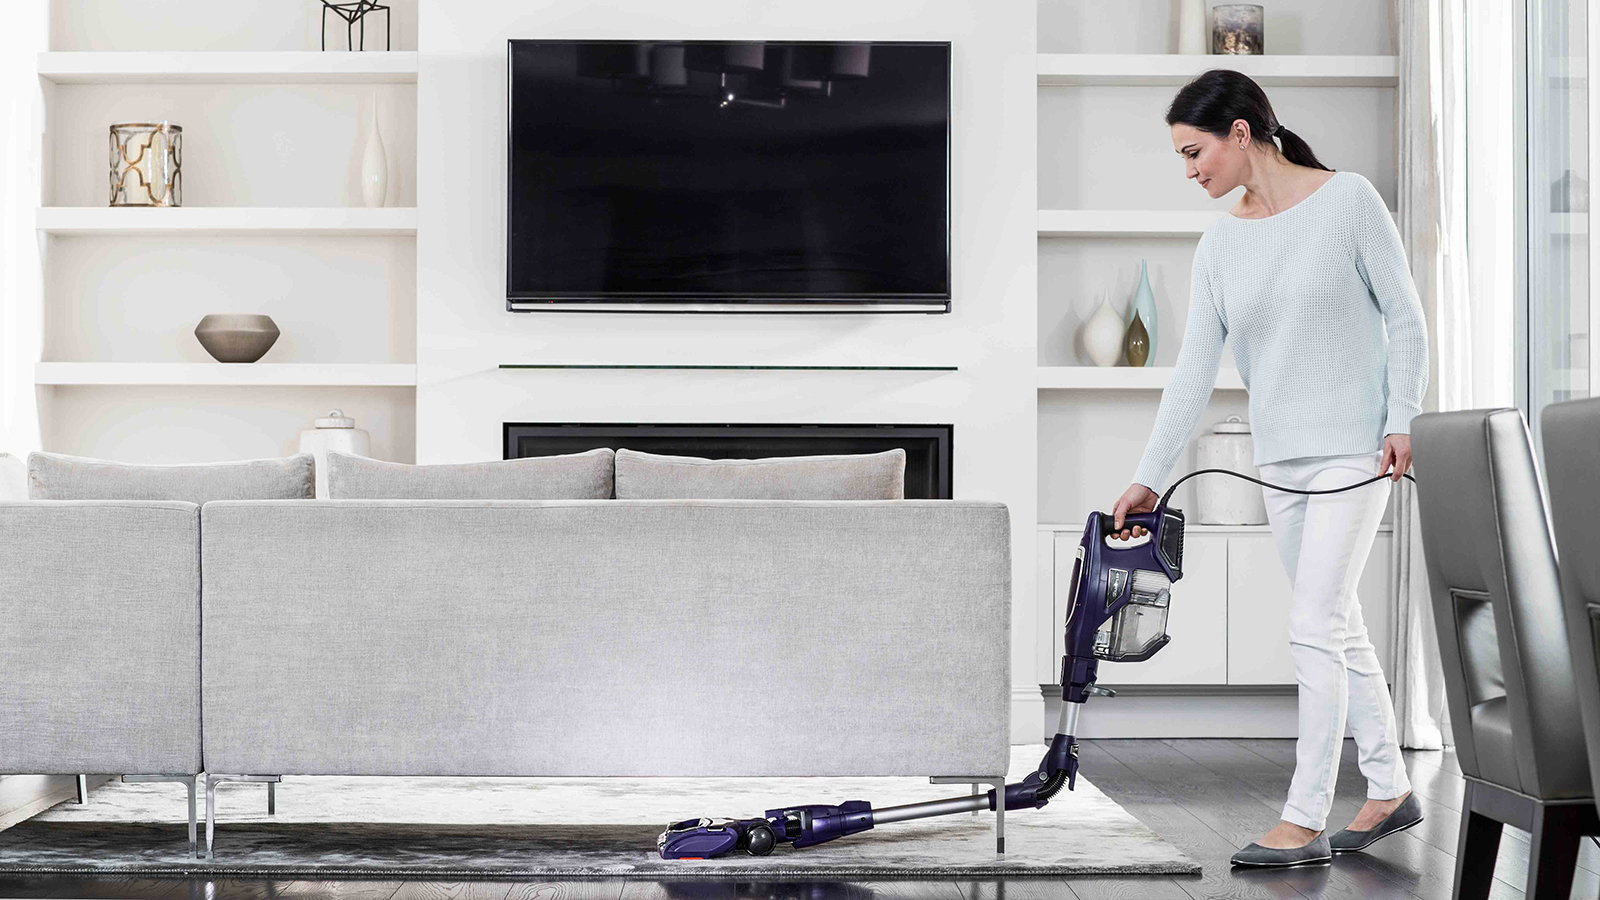 Under Furniture Cleaning with Shark DuoClean Corded Stick Vacuum Cleaner